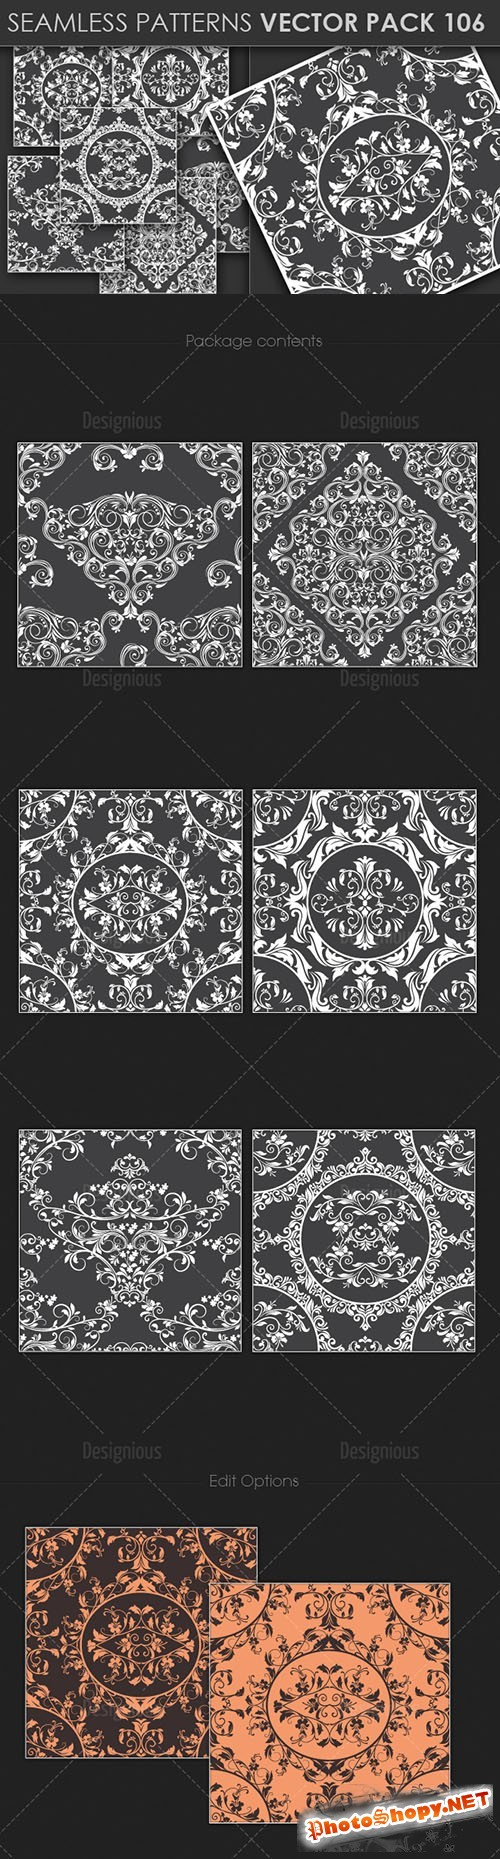 Seamless Patterns Vector Pack 106